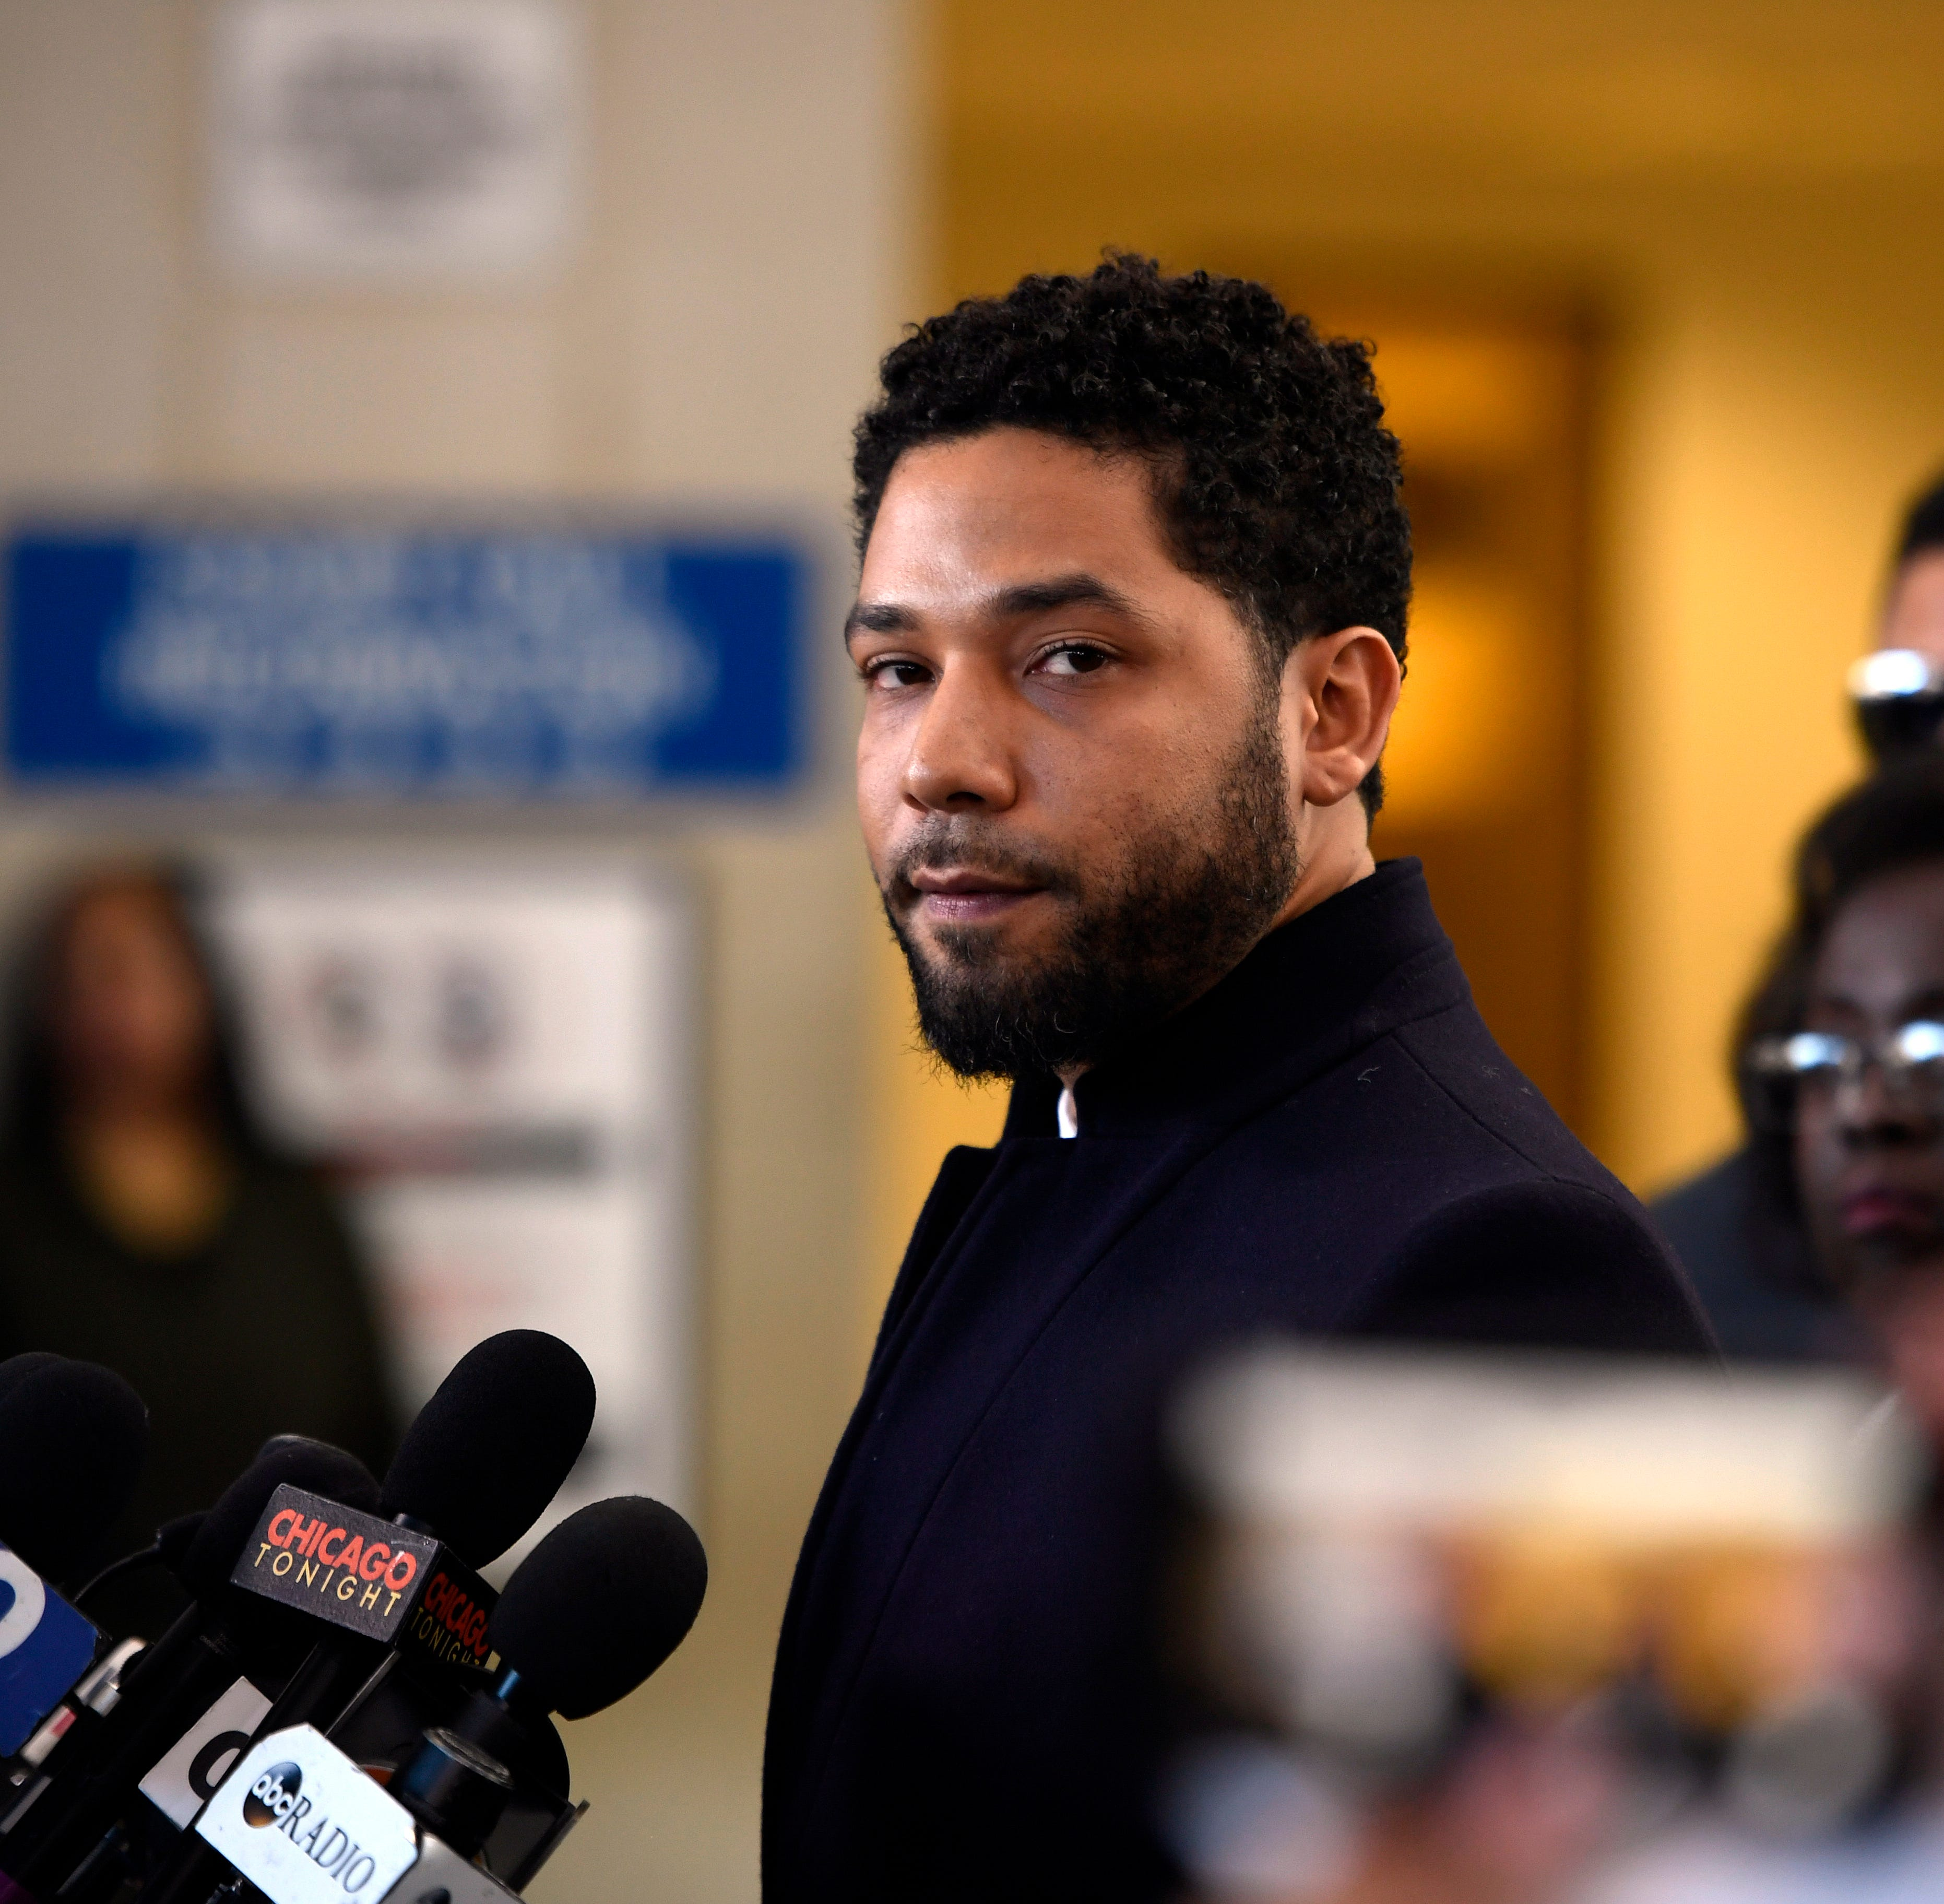 Jussie Smollett case: Prosecutor Kim Foxx questioned charging 'washed up celeb' in text